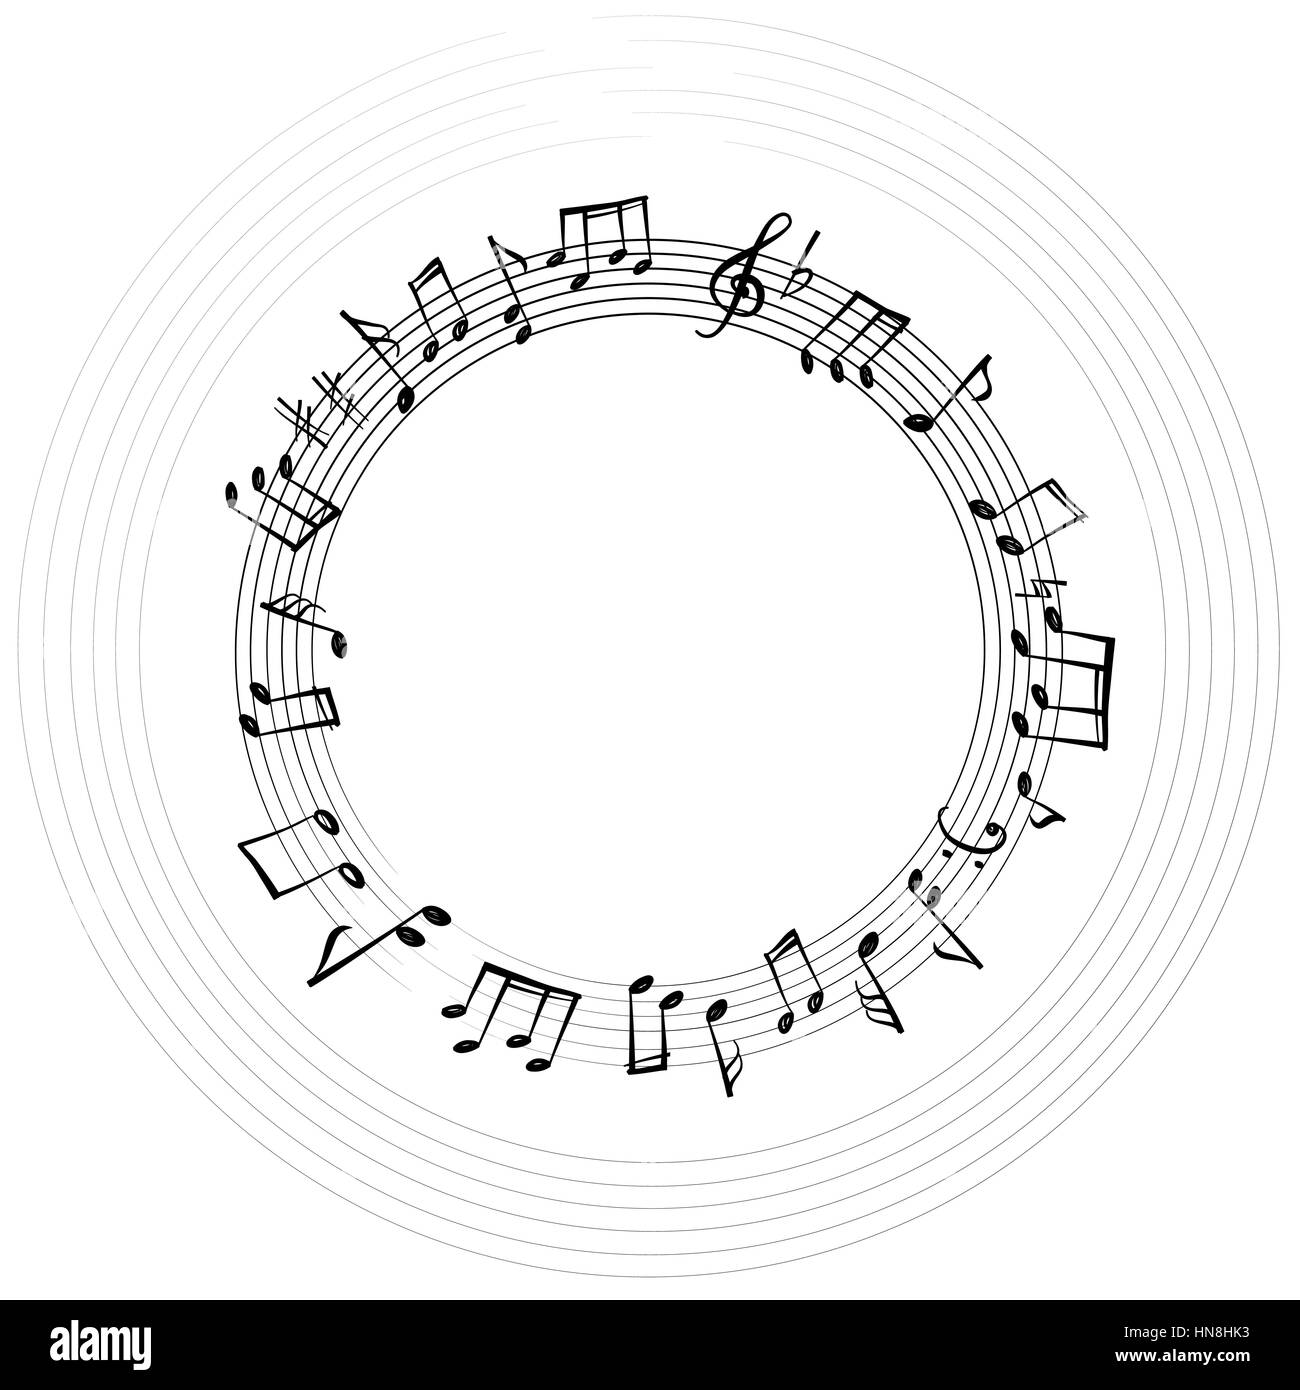 Amazing Wallpaper Music Musical - music-notes-border-musical-background-music-style-round-shape-frame-HN8HK3  Photograph_85632.jpg